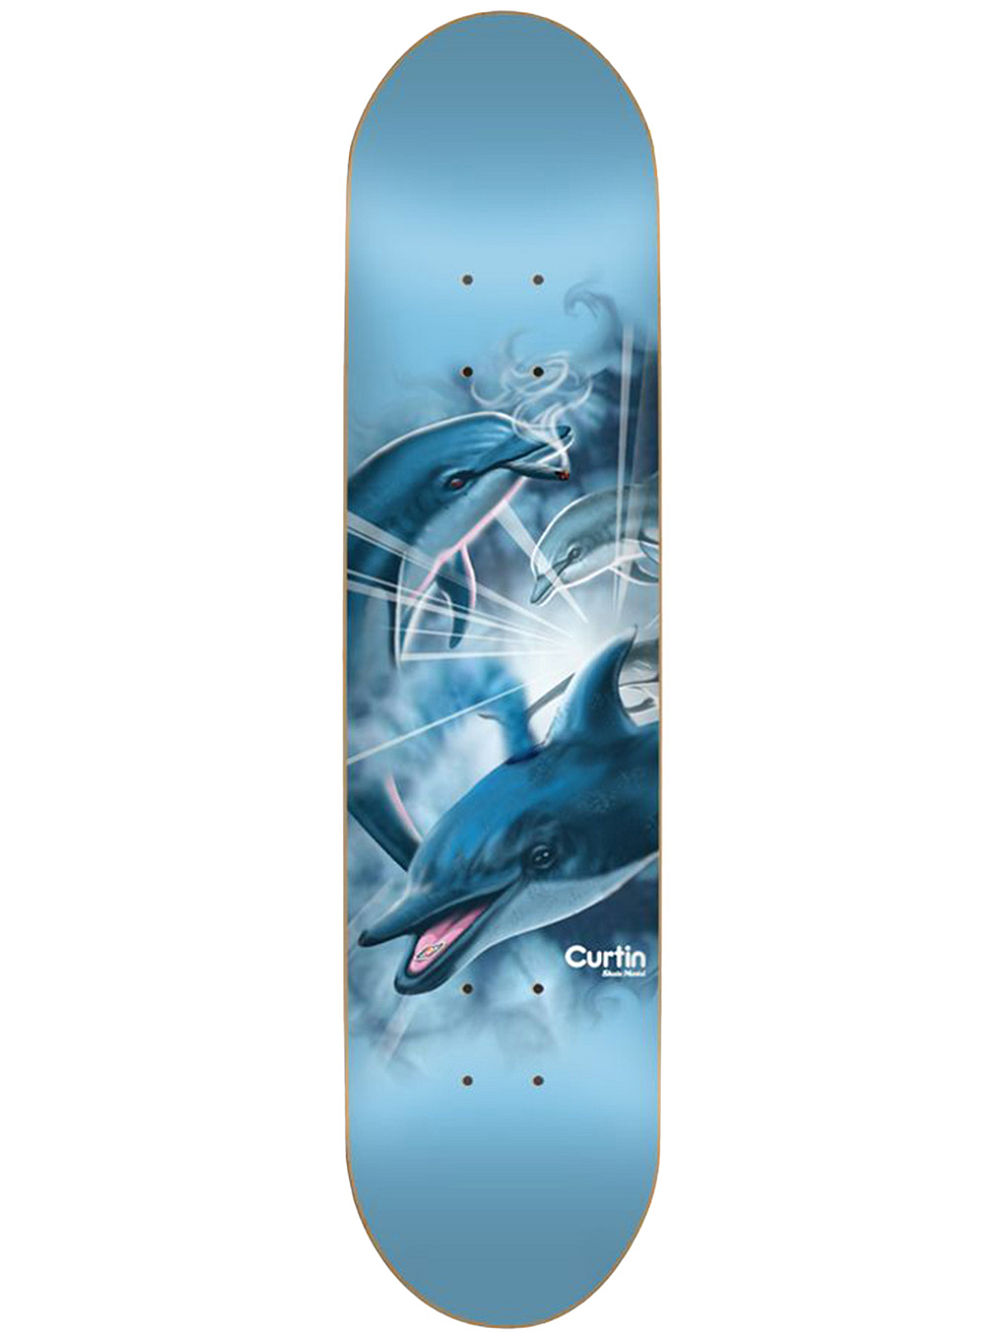 "Curtin Dolphins 8.0"" Skate Deck"